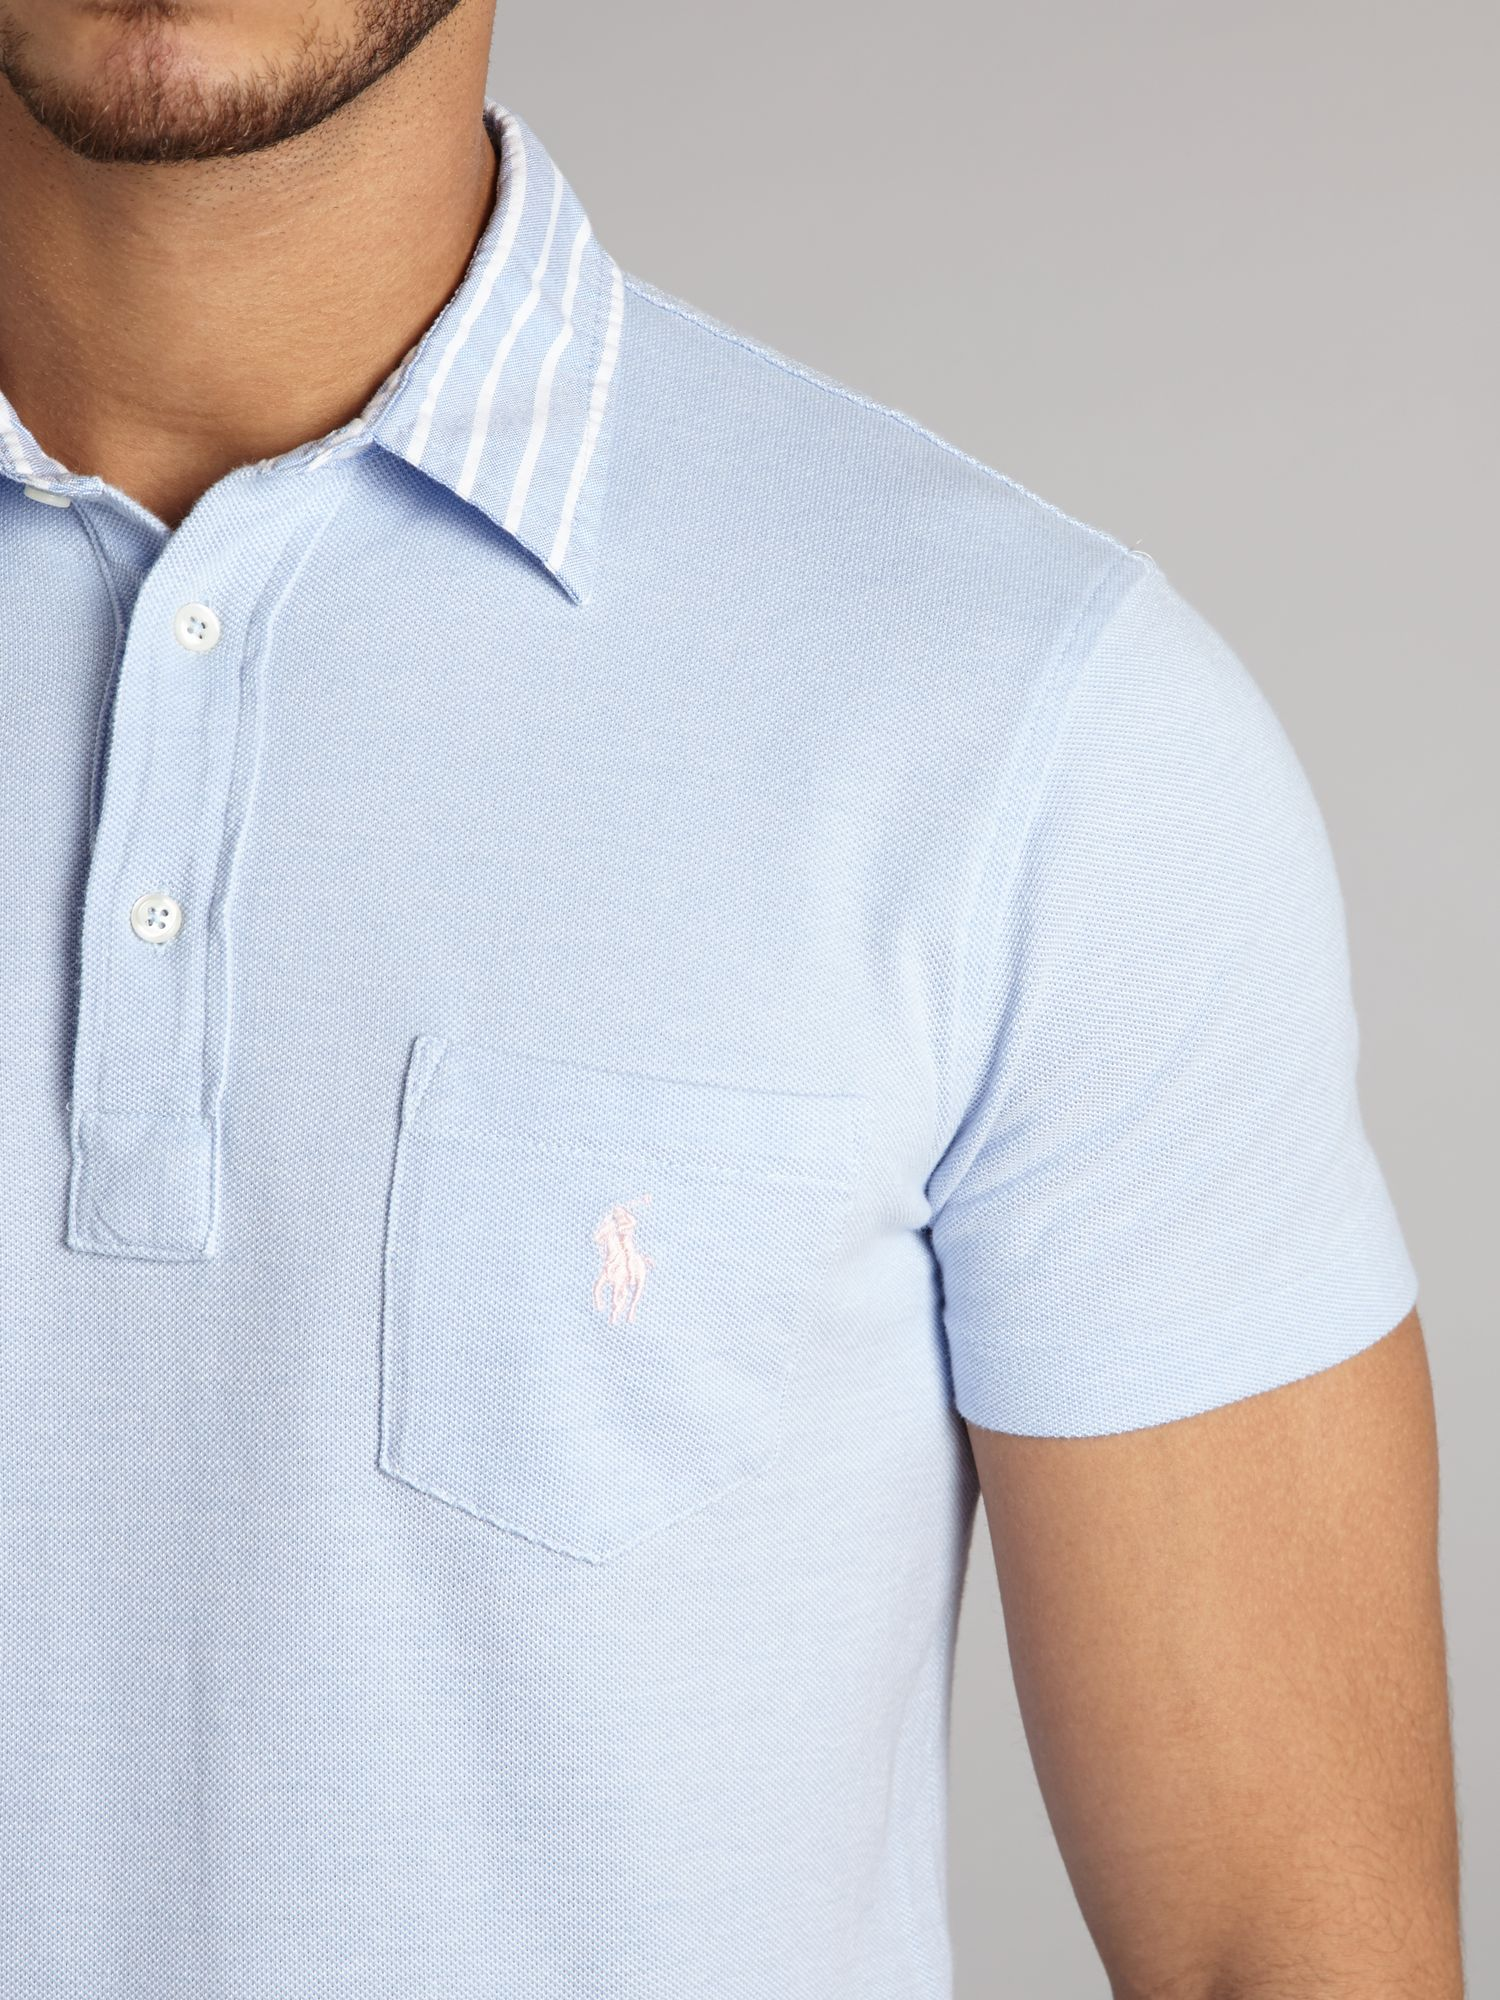 Lyst polo ralph lauren woven collar polo shirt with for Polo t shirts with pocket online